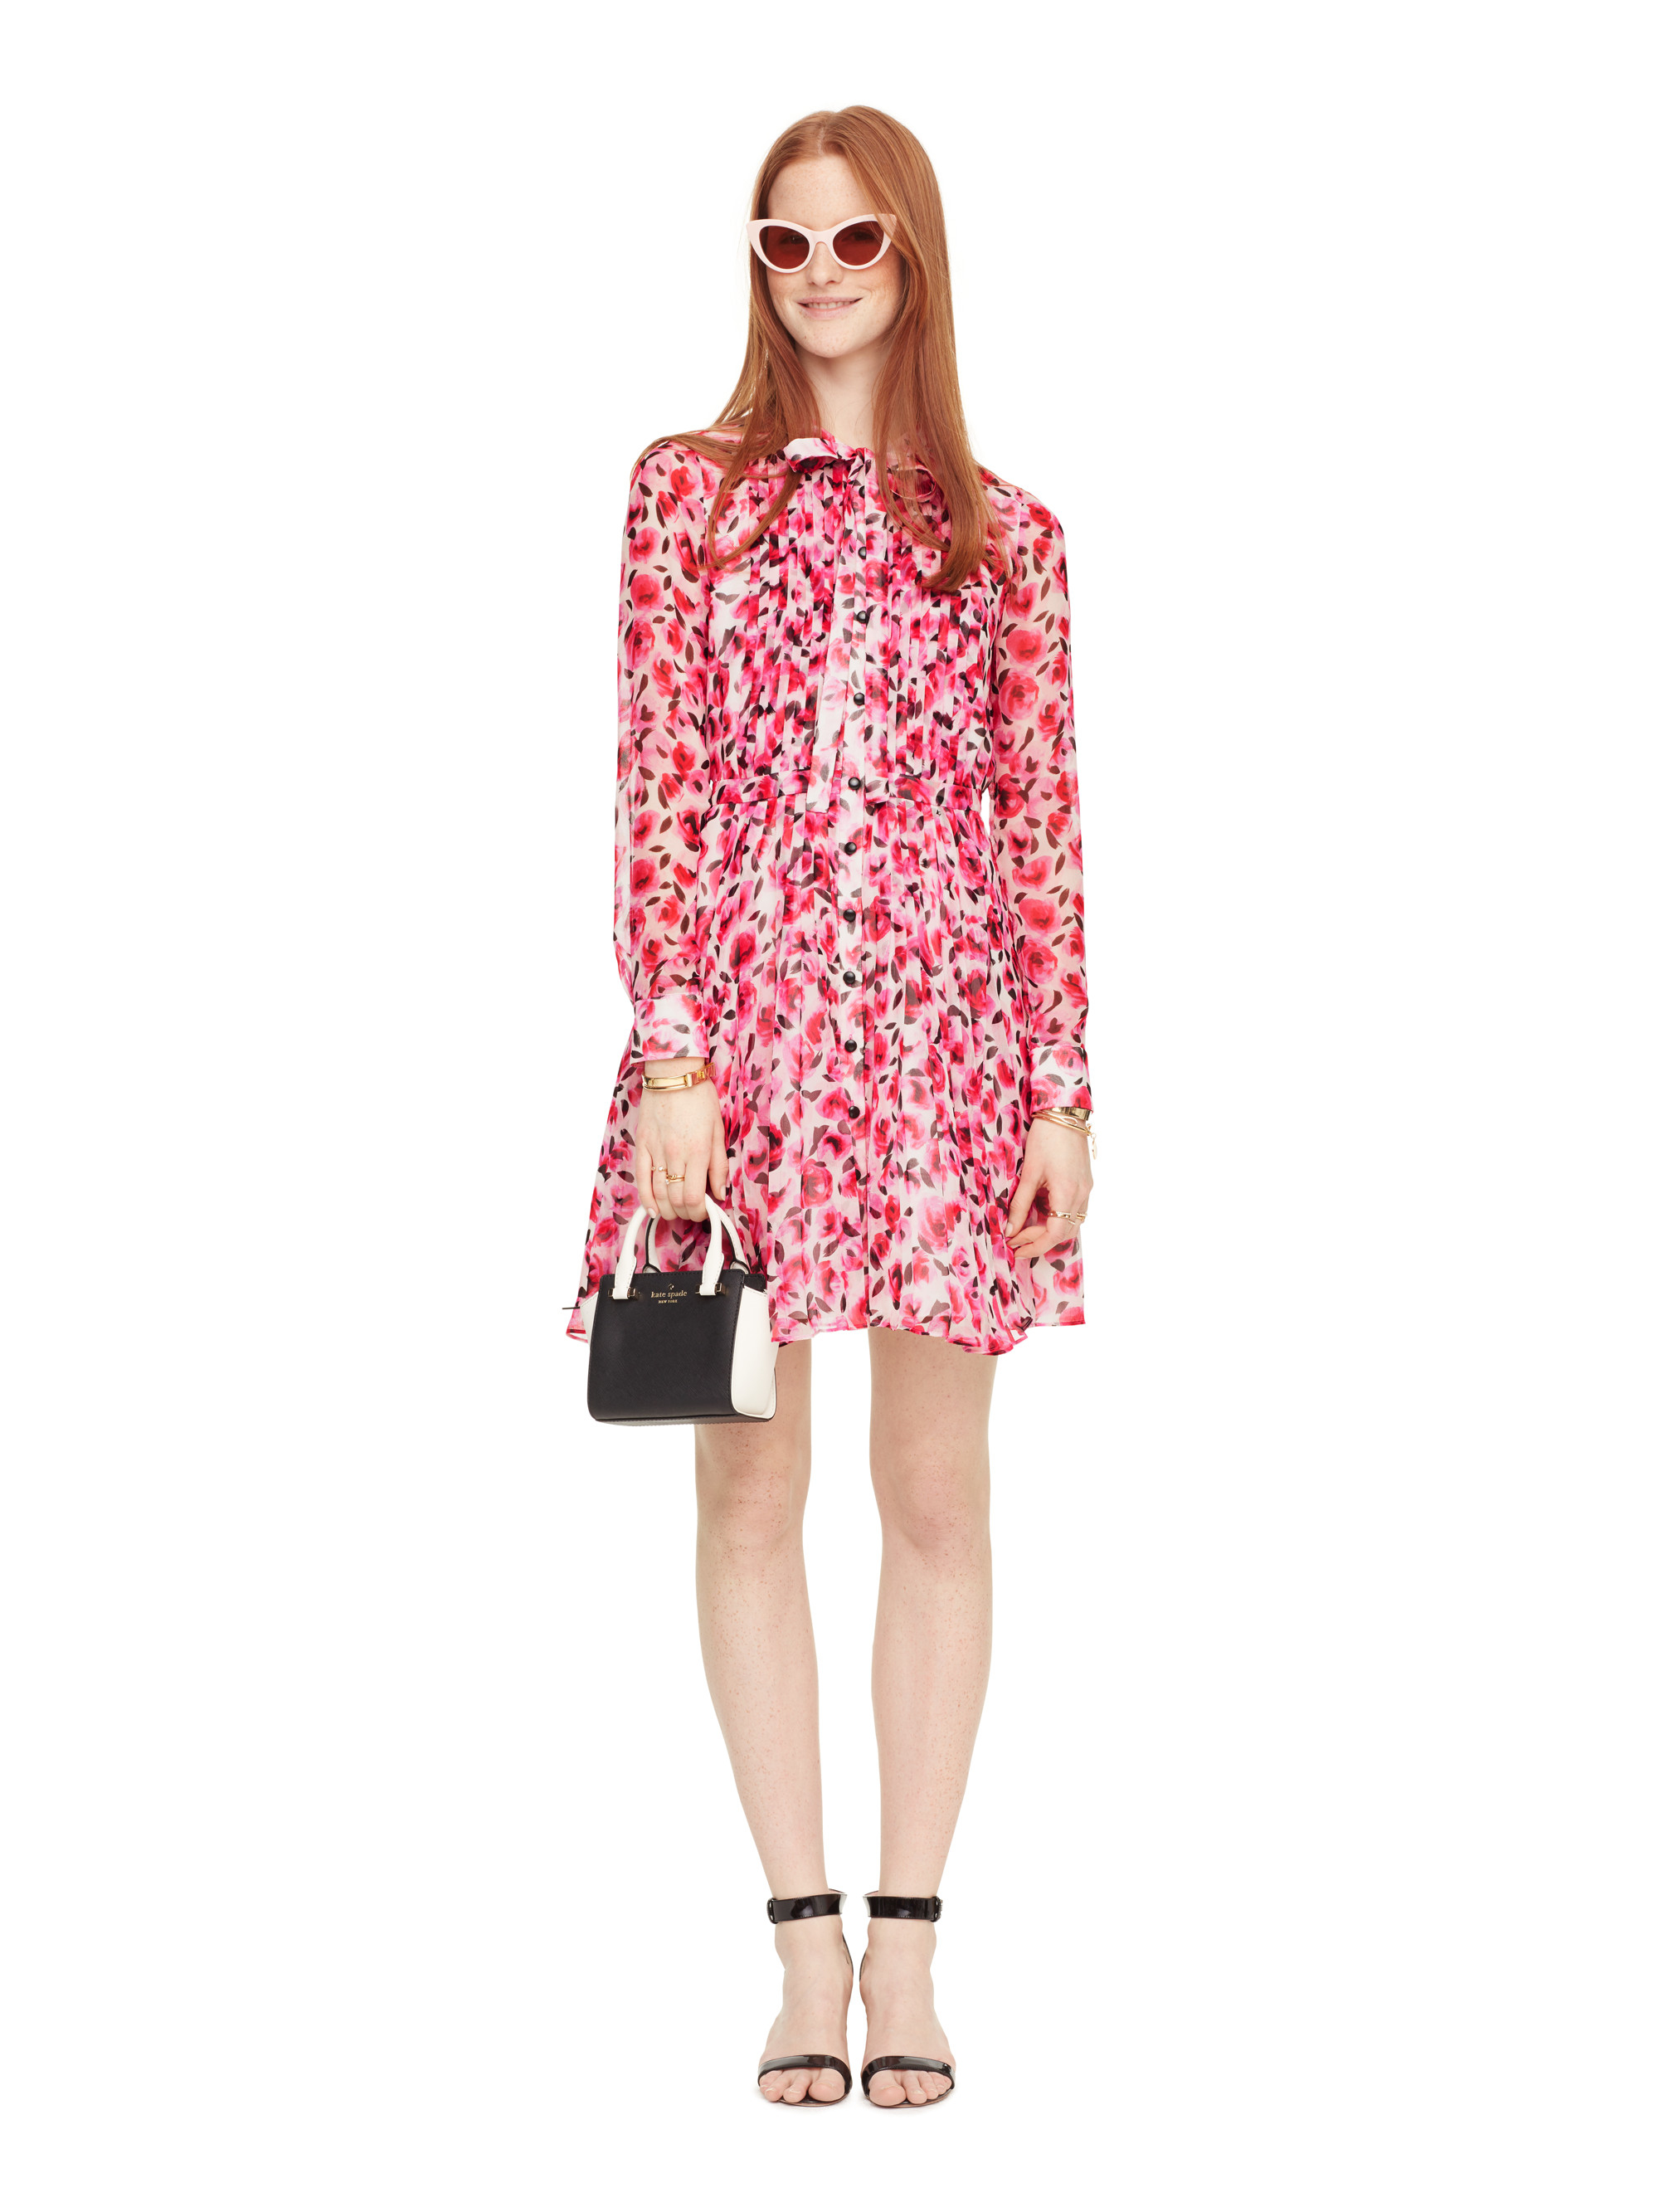 Kate Spade New York Mini Rose Pleated Shirtdress In Pink